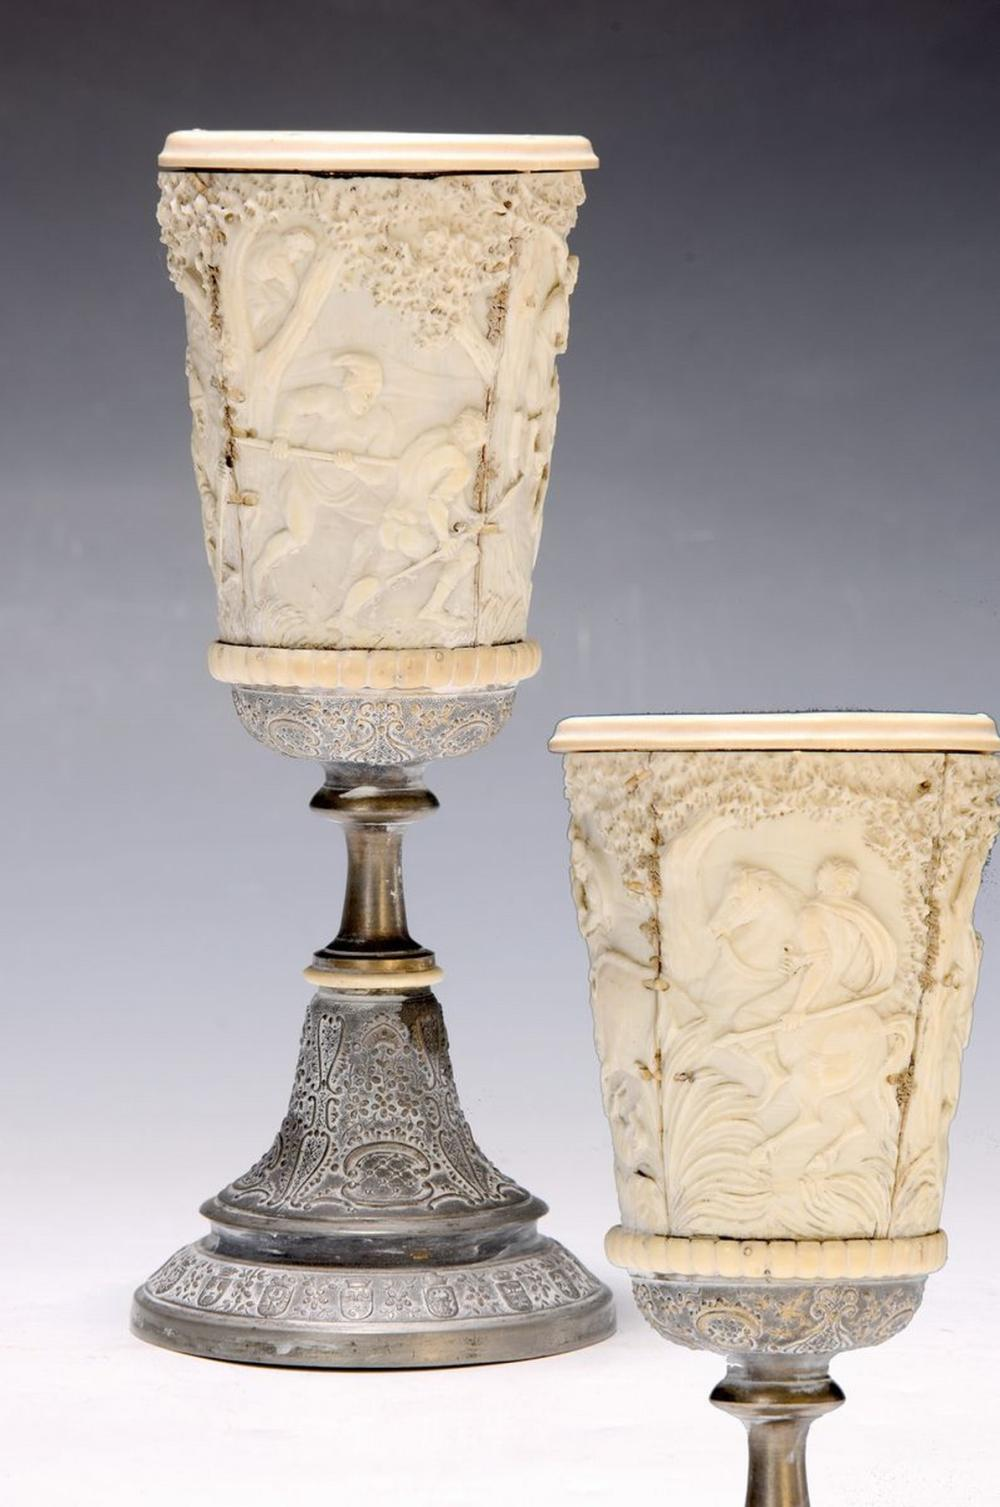 goblet with Ivory Pads, German, 18/19th c., encircling